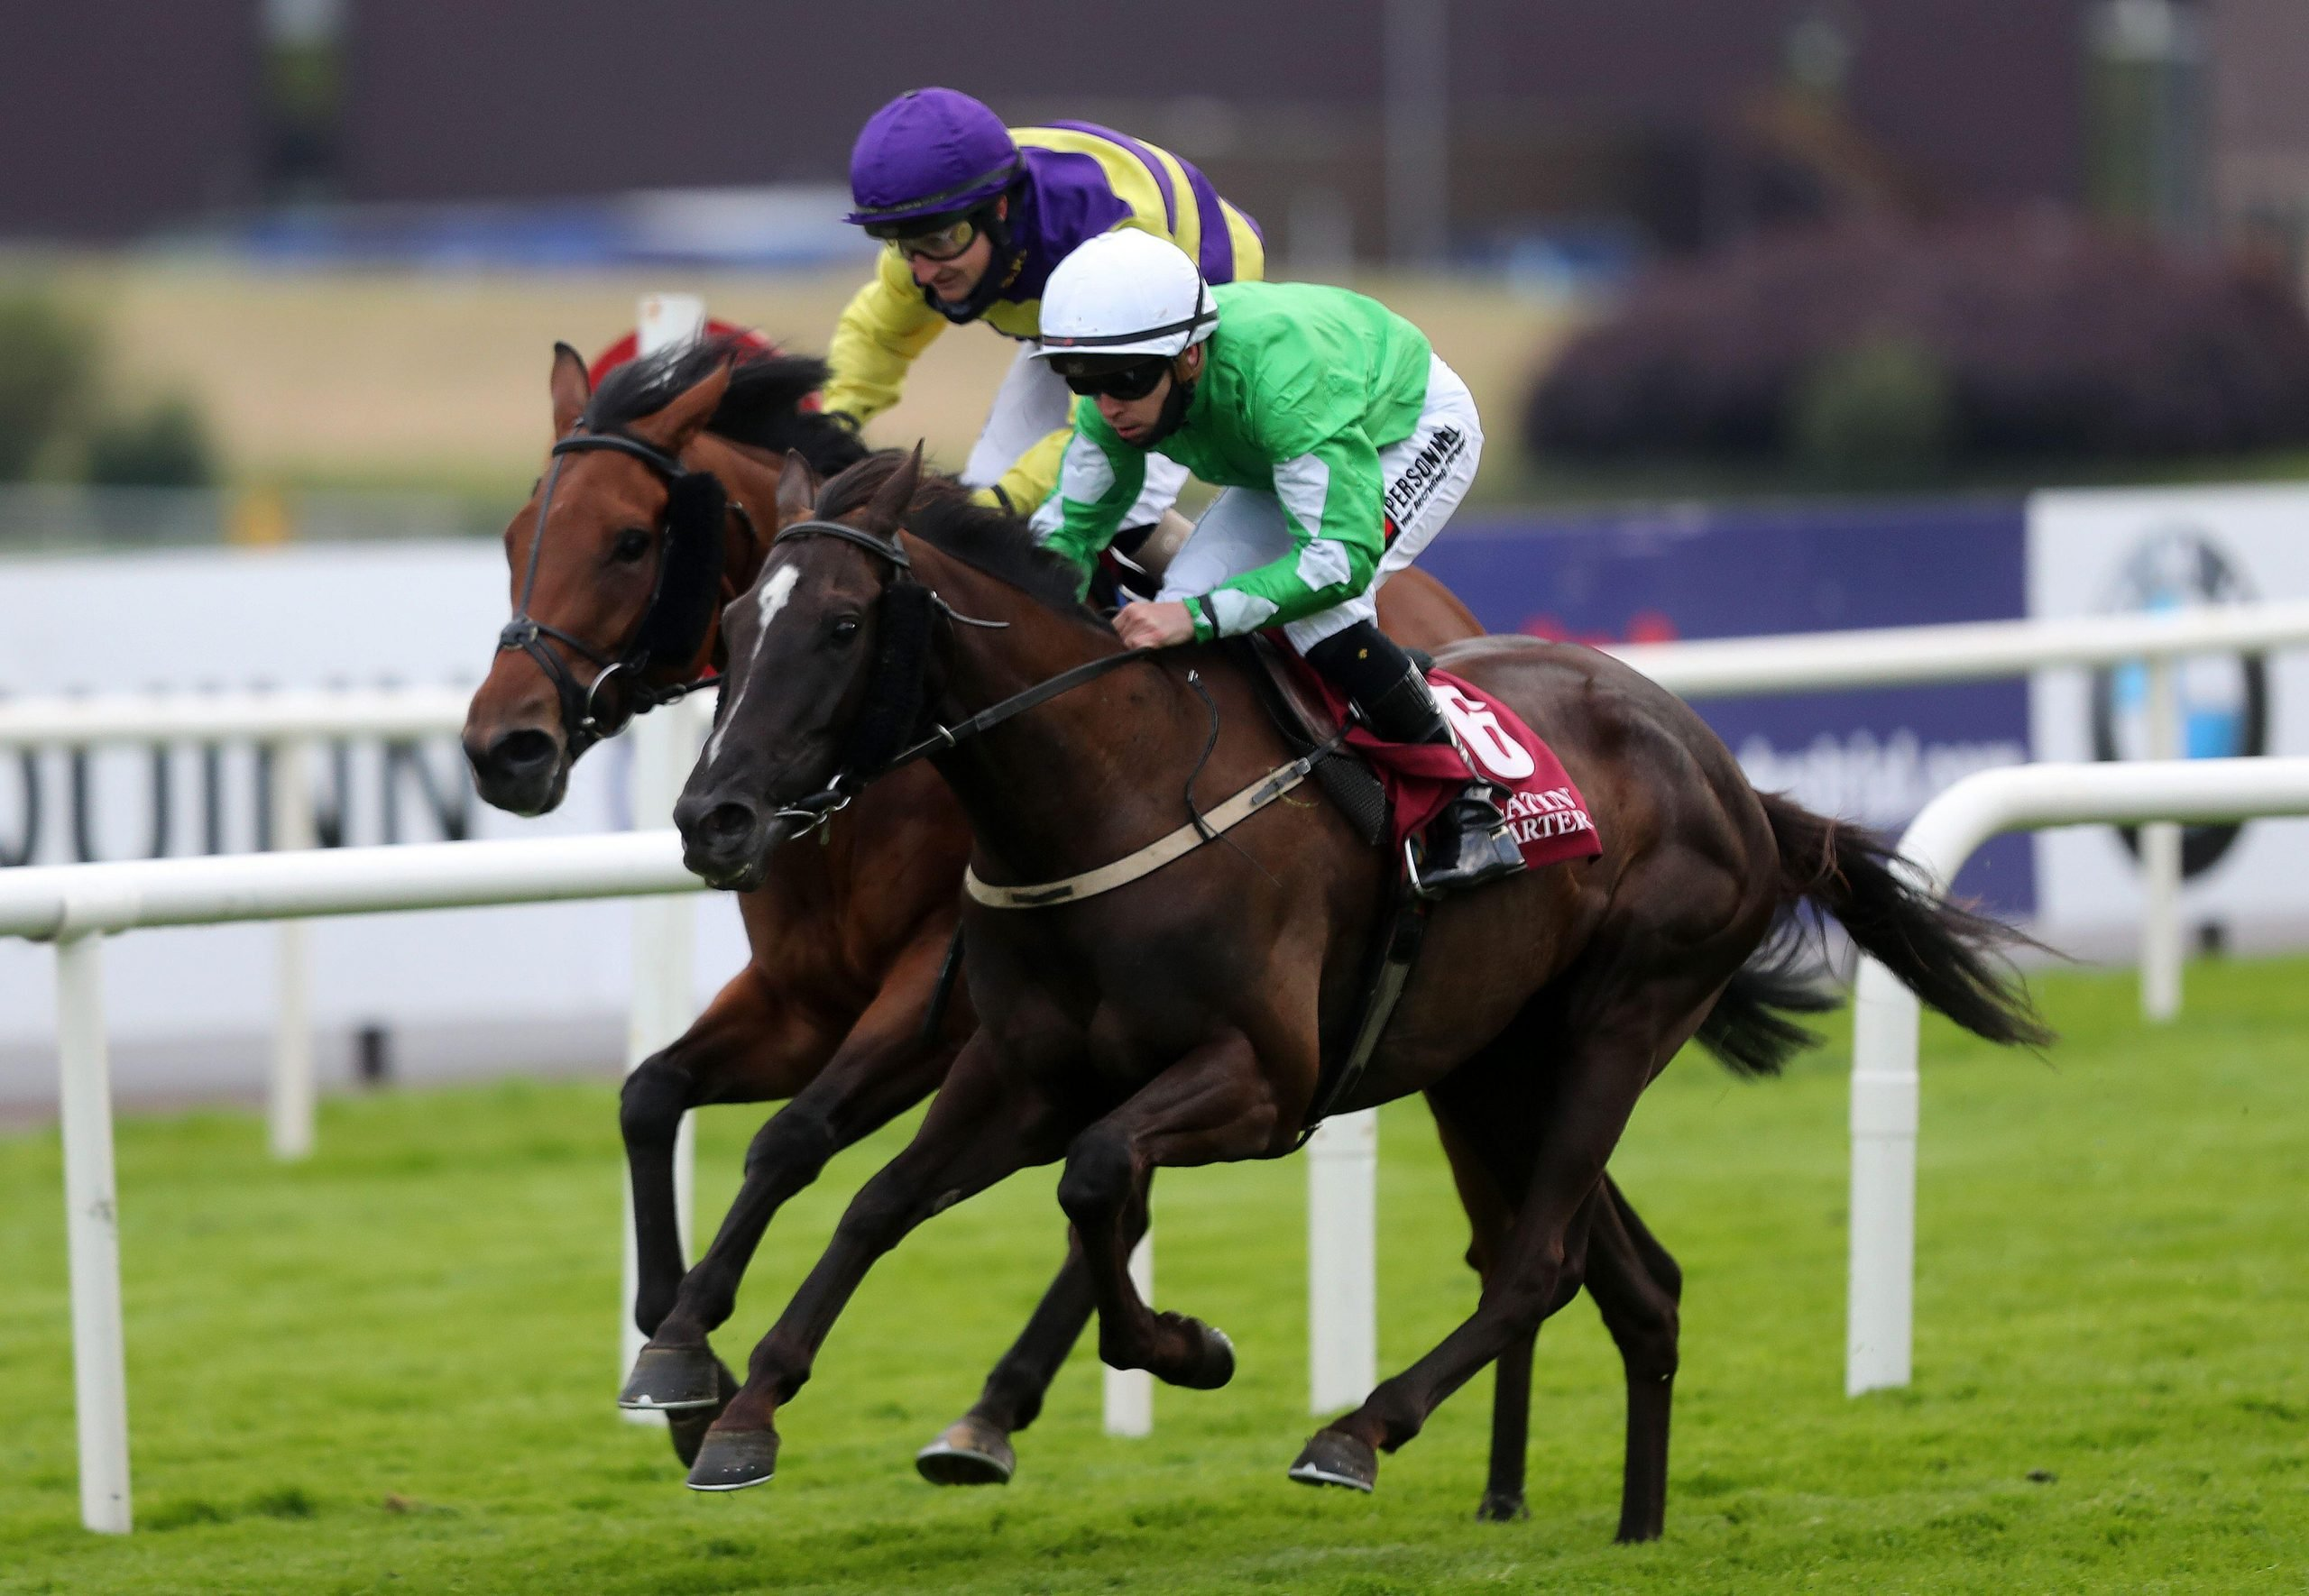 2C93MXE Walking On Glass ridden by Leigh Roche (right) wins the Latin Quarter Handicap (50-80) during day two of the 2020 Galway Races Summer Festival at Galway Racecourse.